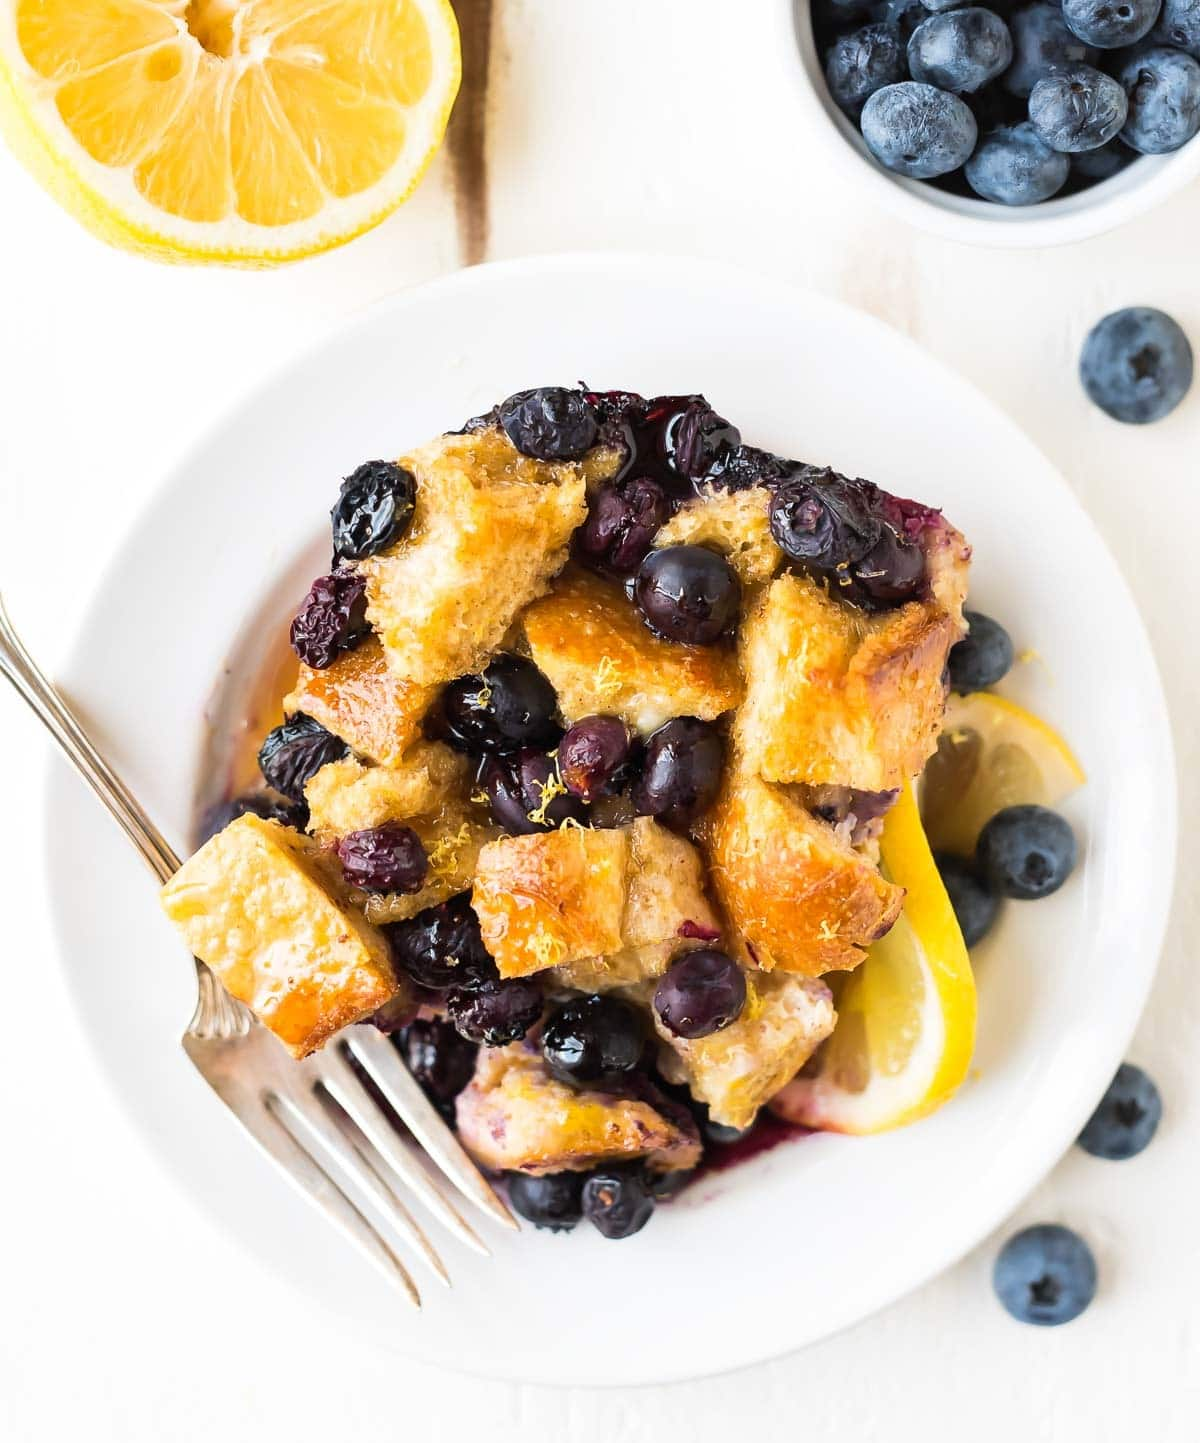 Blueberry French toast casserole in a bowl with lemons